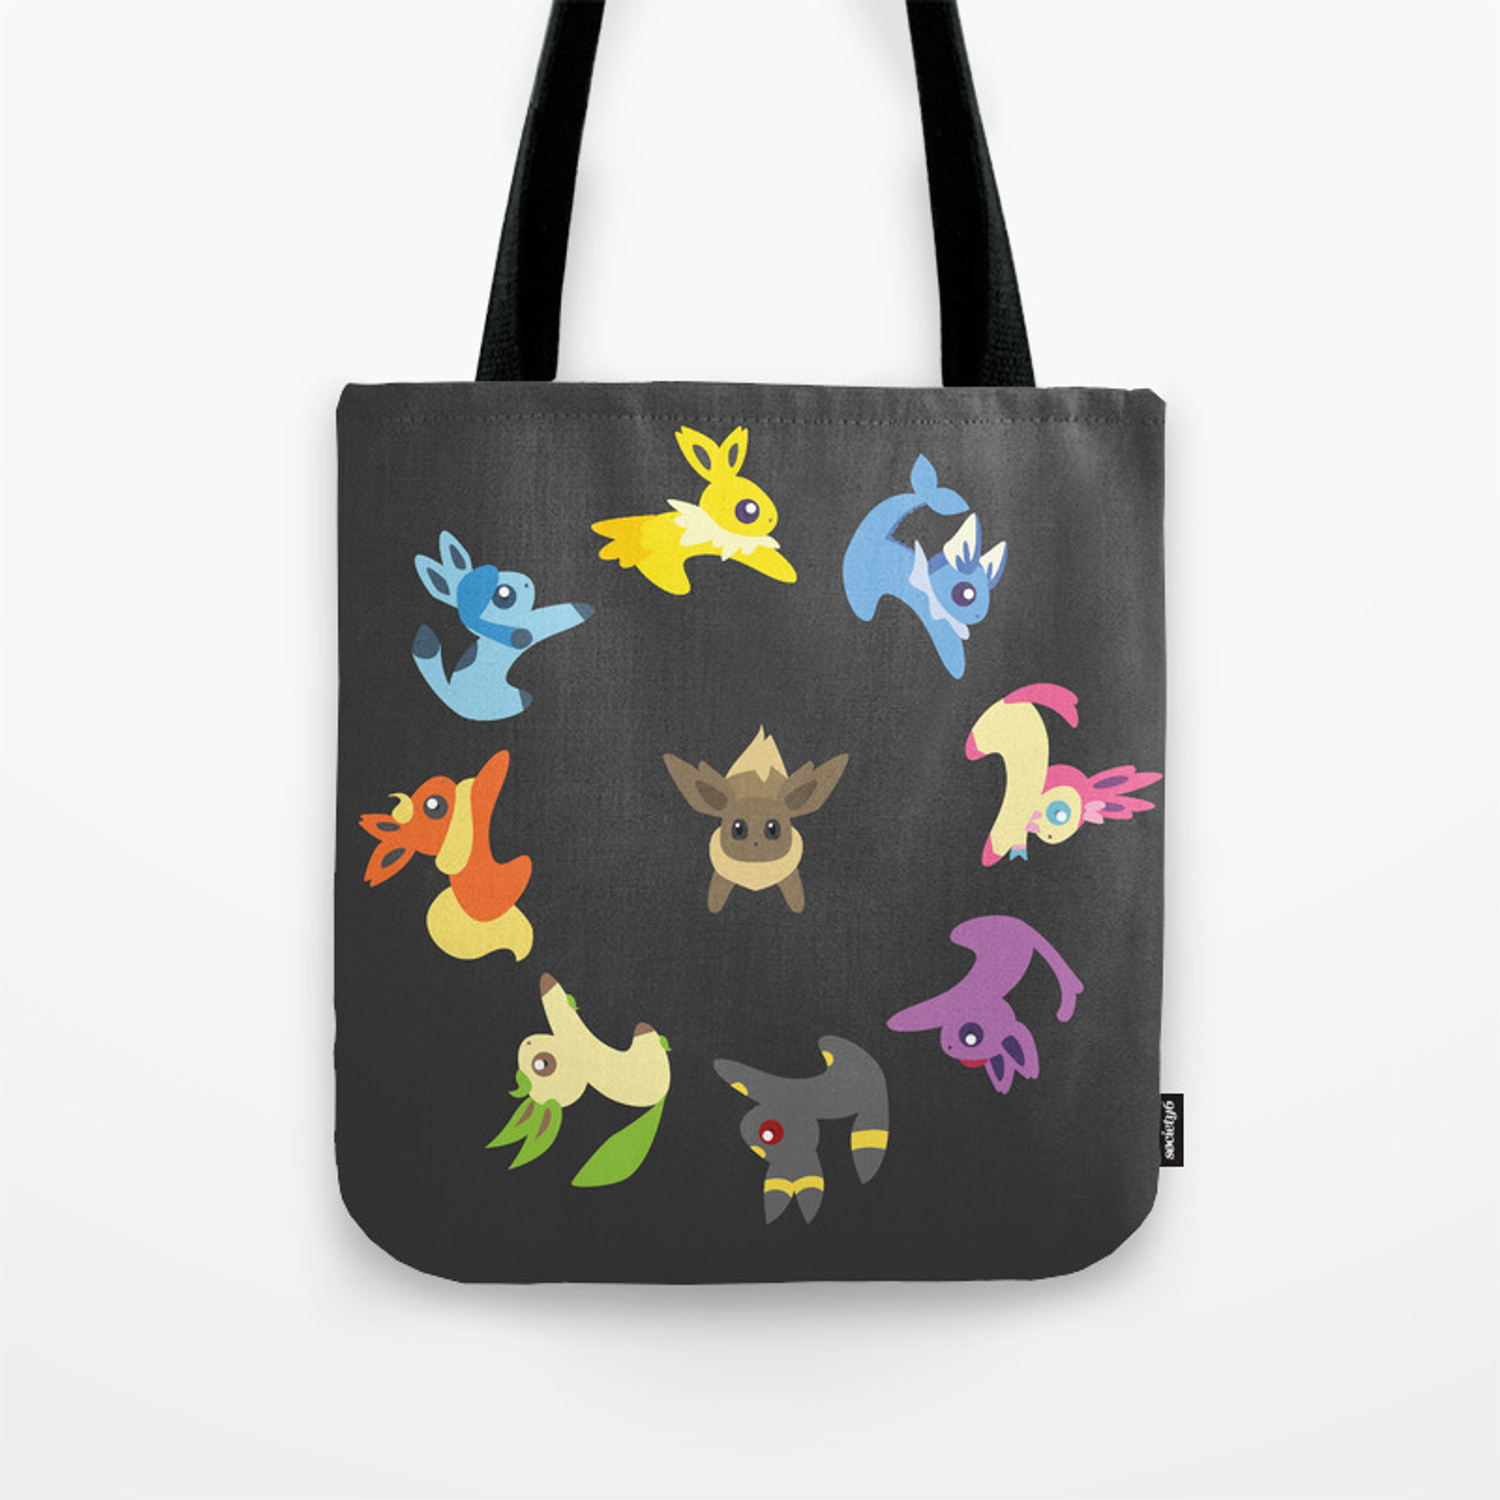 NEW 3 pks of Tote Bags Bat Black Cat /& Spider